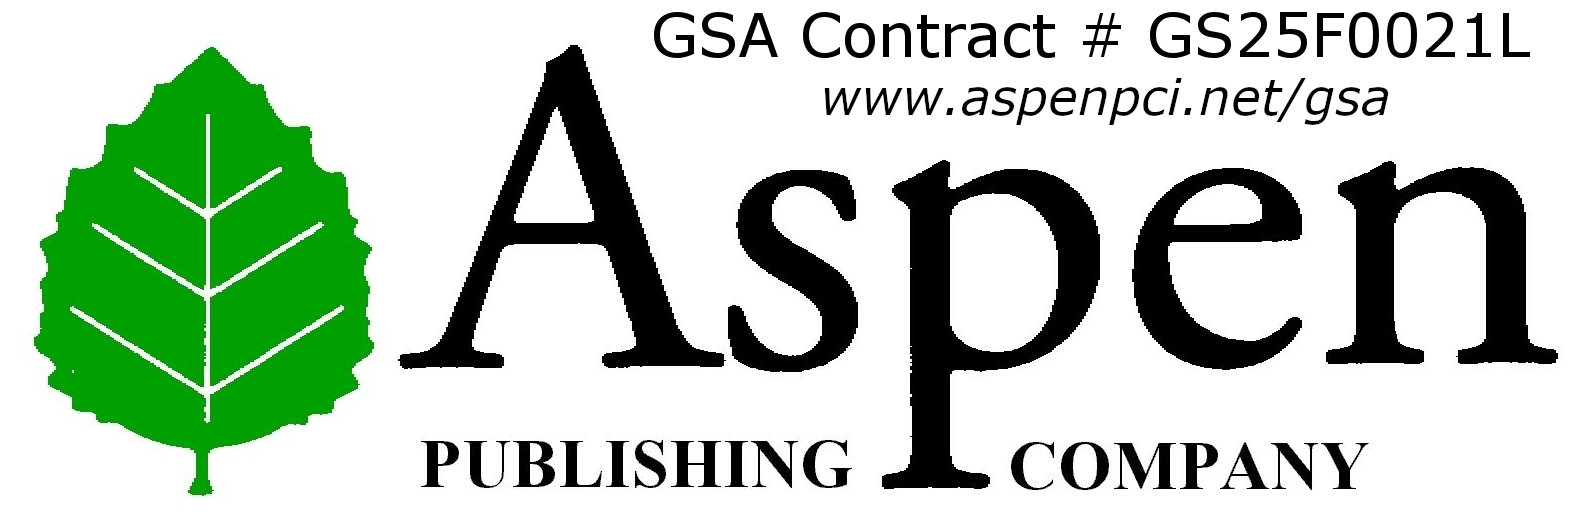 aspen publishing with gsa contract AND websit